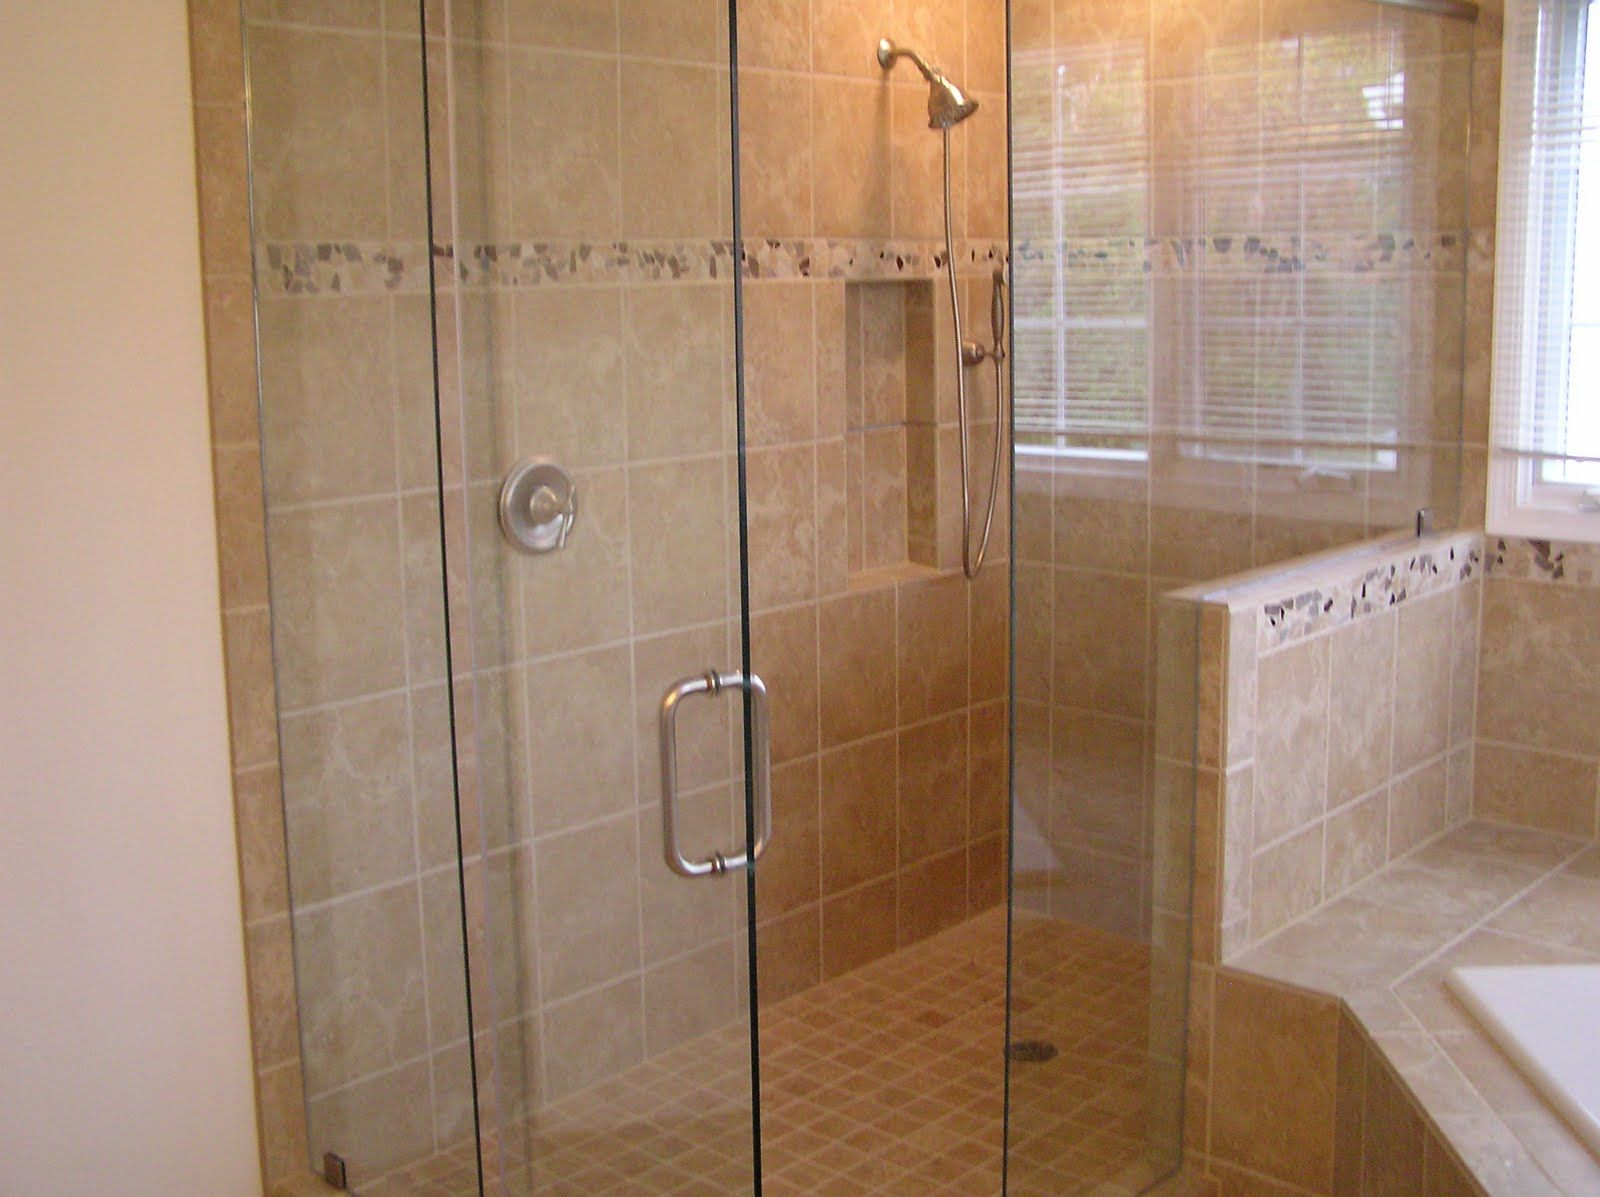 bathroom tile designs ideas bathroom shower tile shower design ideas - Bath Shower Tile Design Ideas